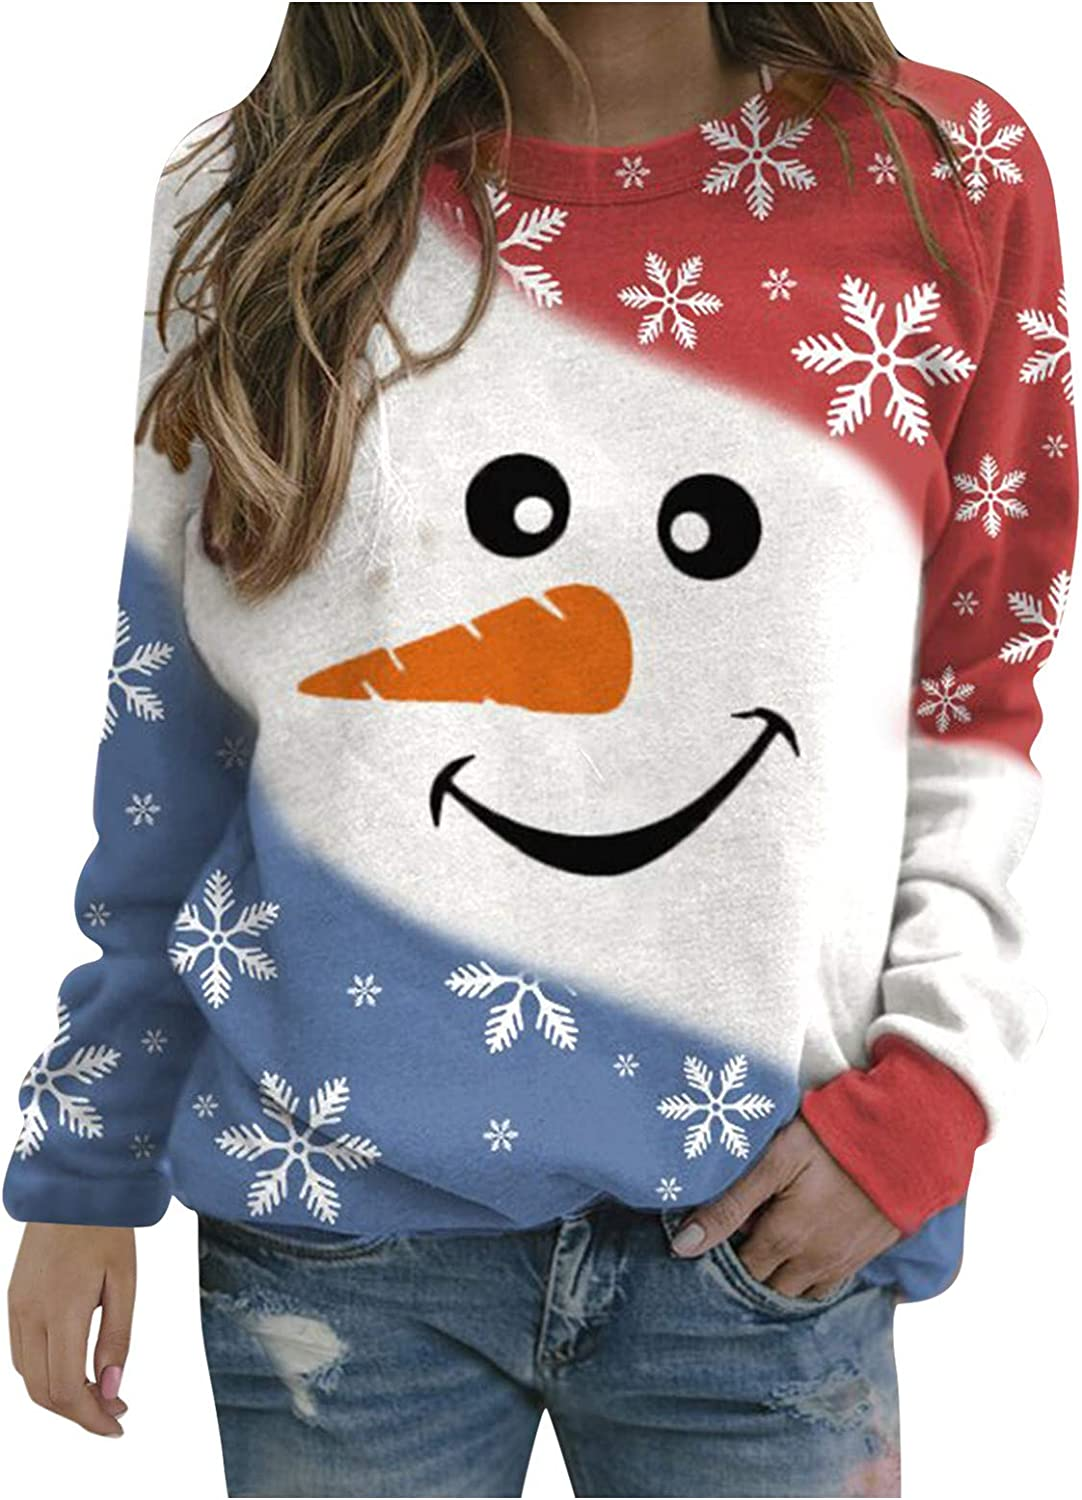 Christmas Sweatshirts for Women Funny Cute Facial Expression Snowman Graphic T Shirt Pullover Crewneck Long Sleeve Tops